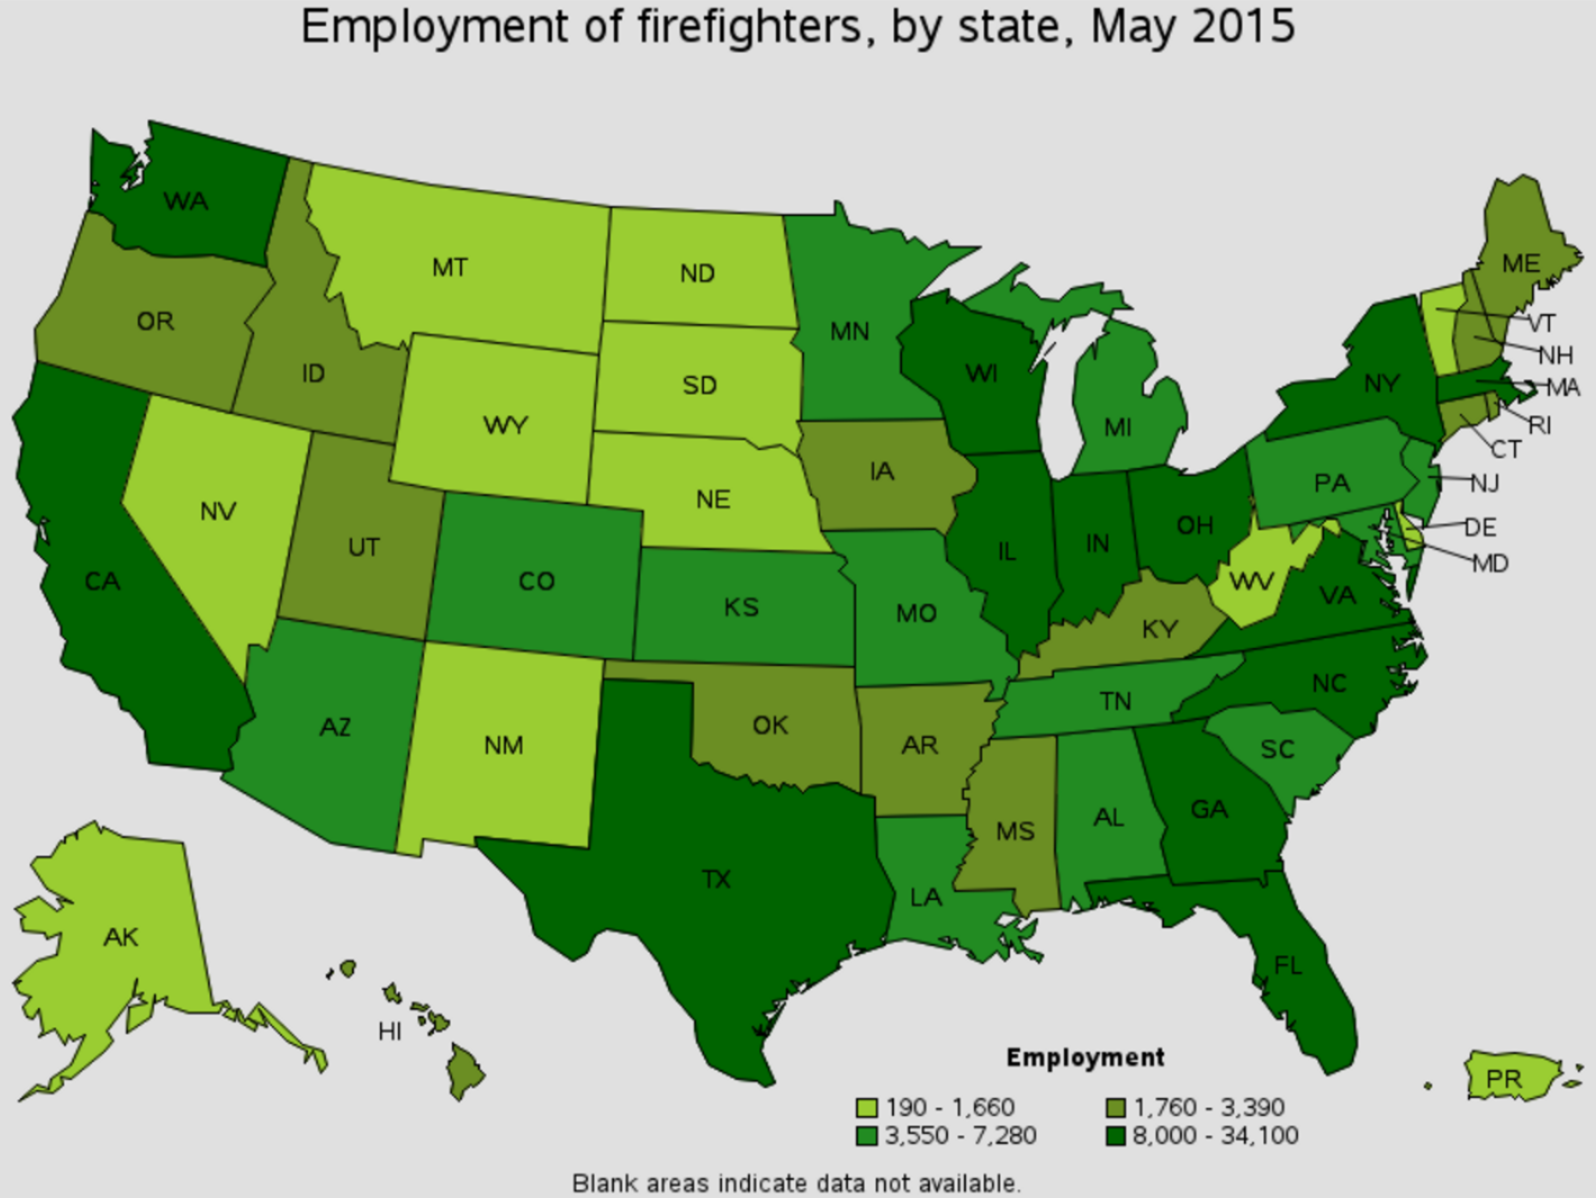 firefighter job outlook by state Lewisville Texas